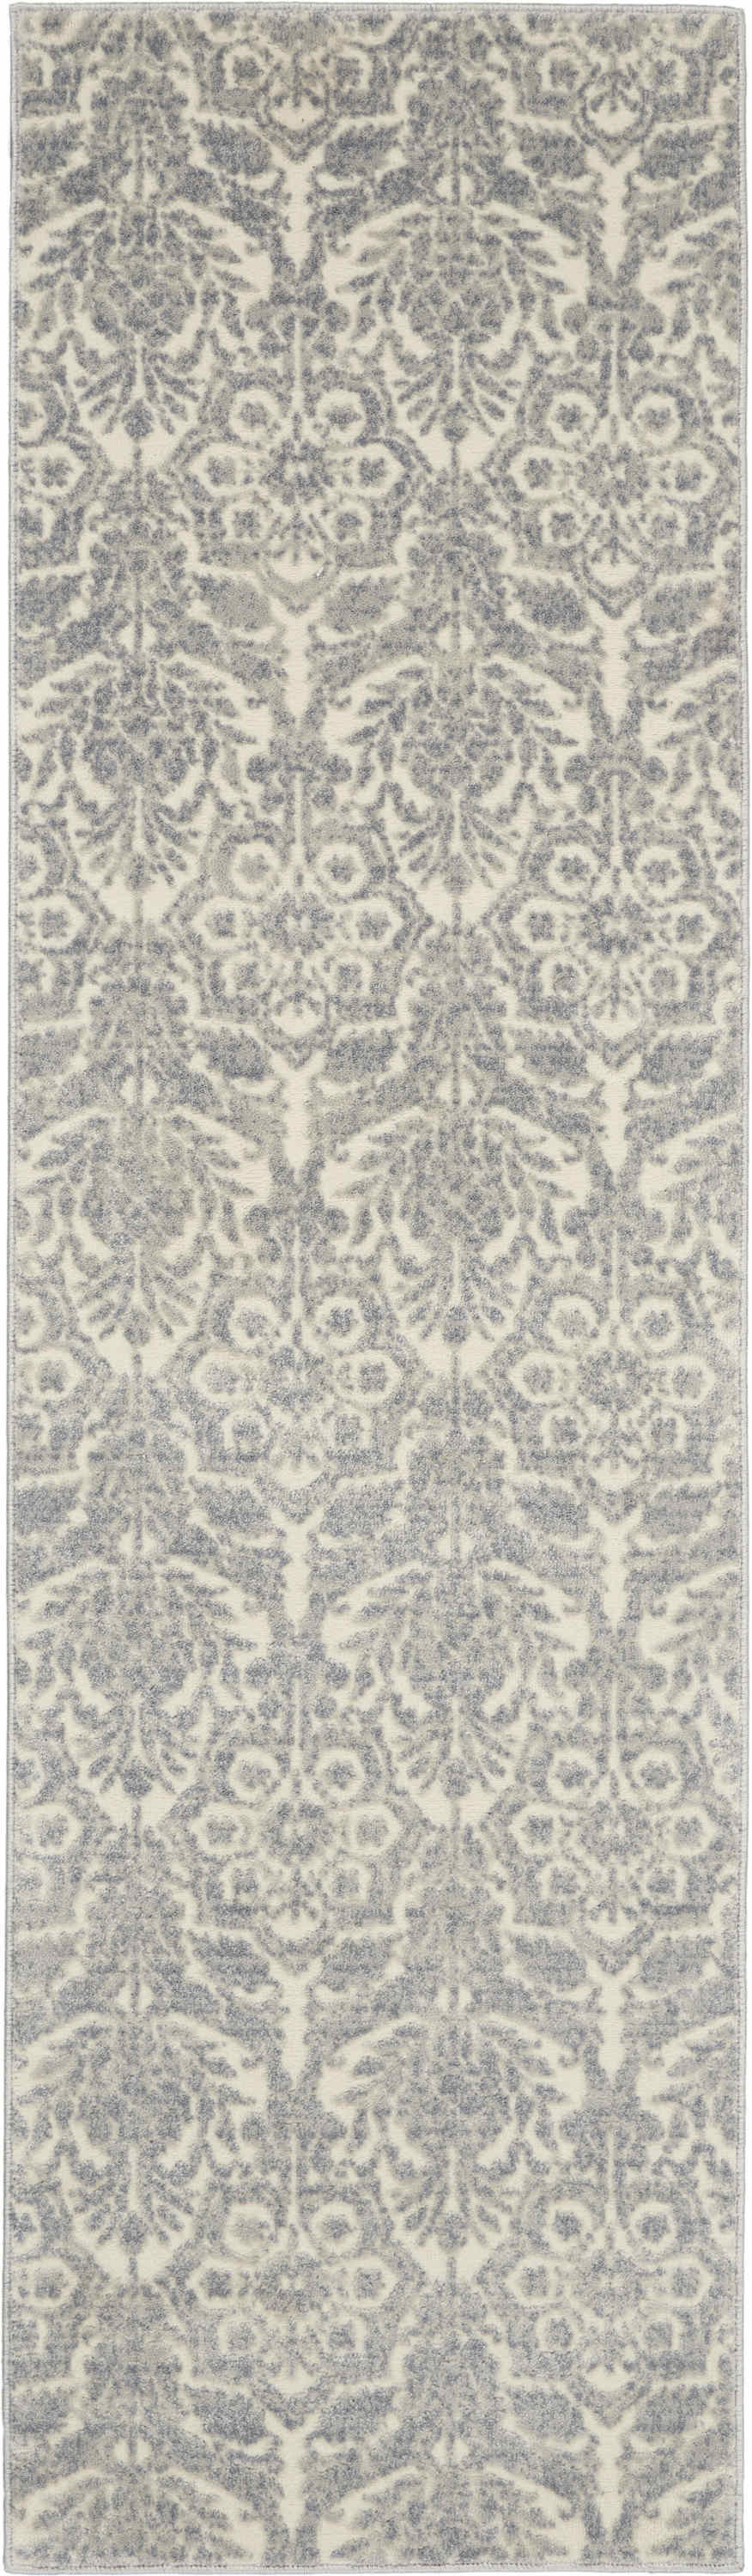 Kathy Ireland Home Ki39 Sahara Transitional Ivory Rug Ki390